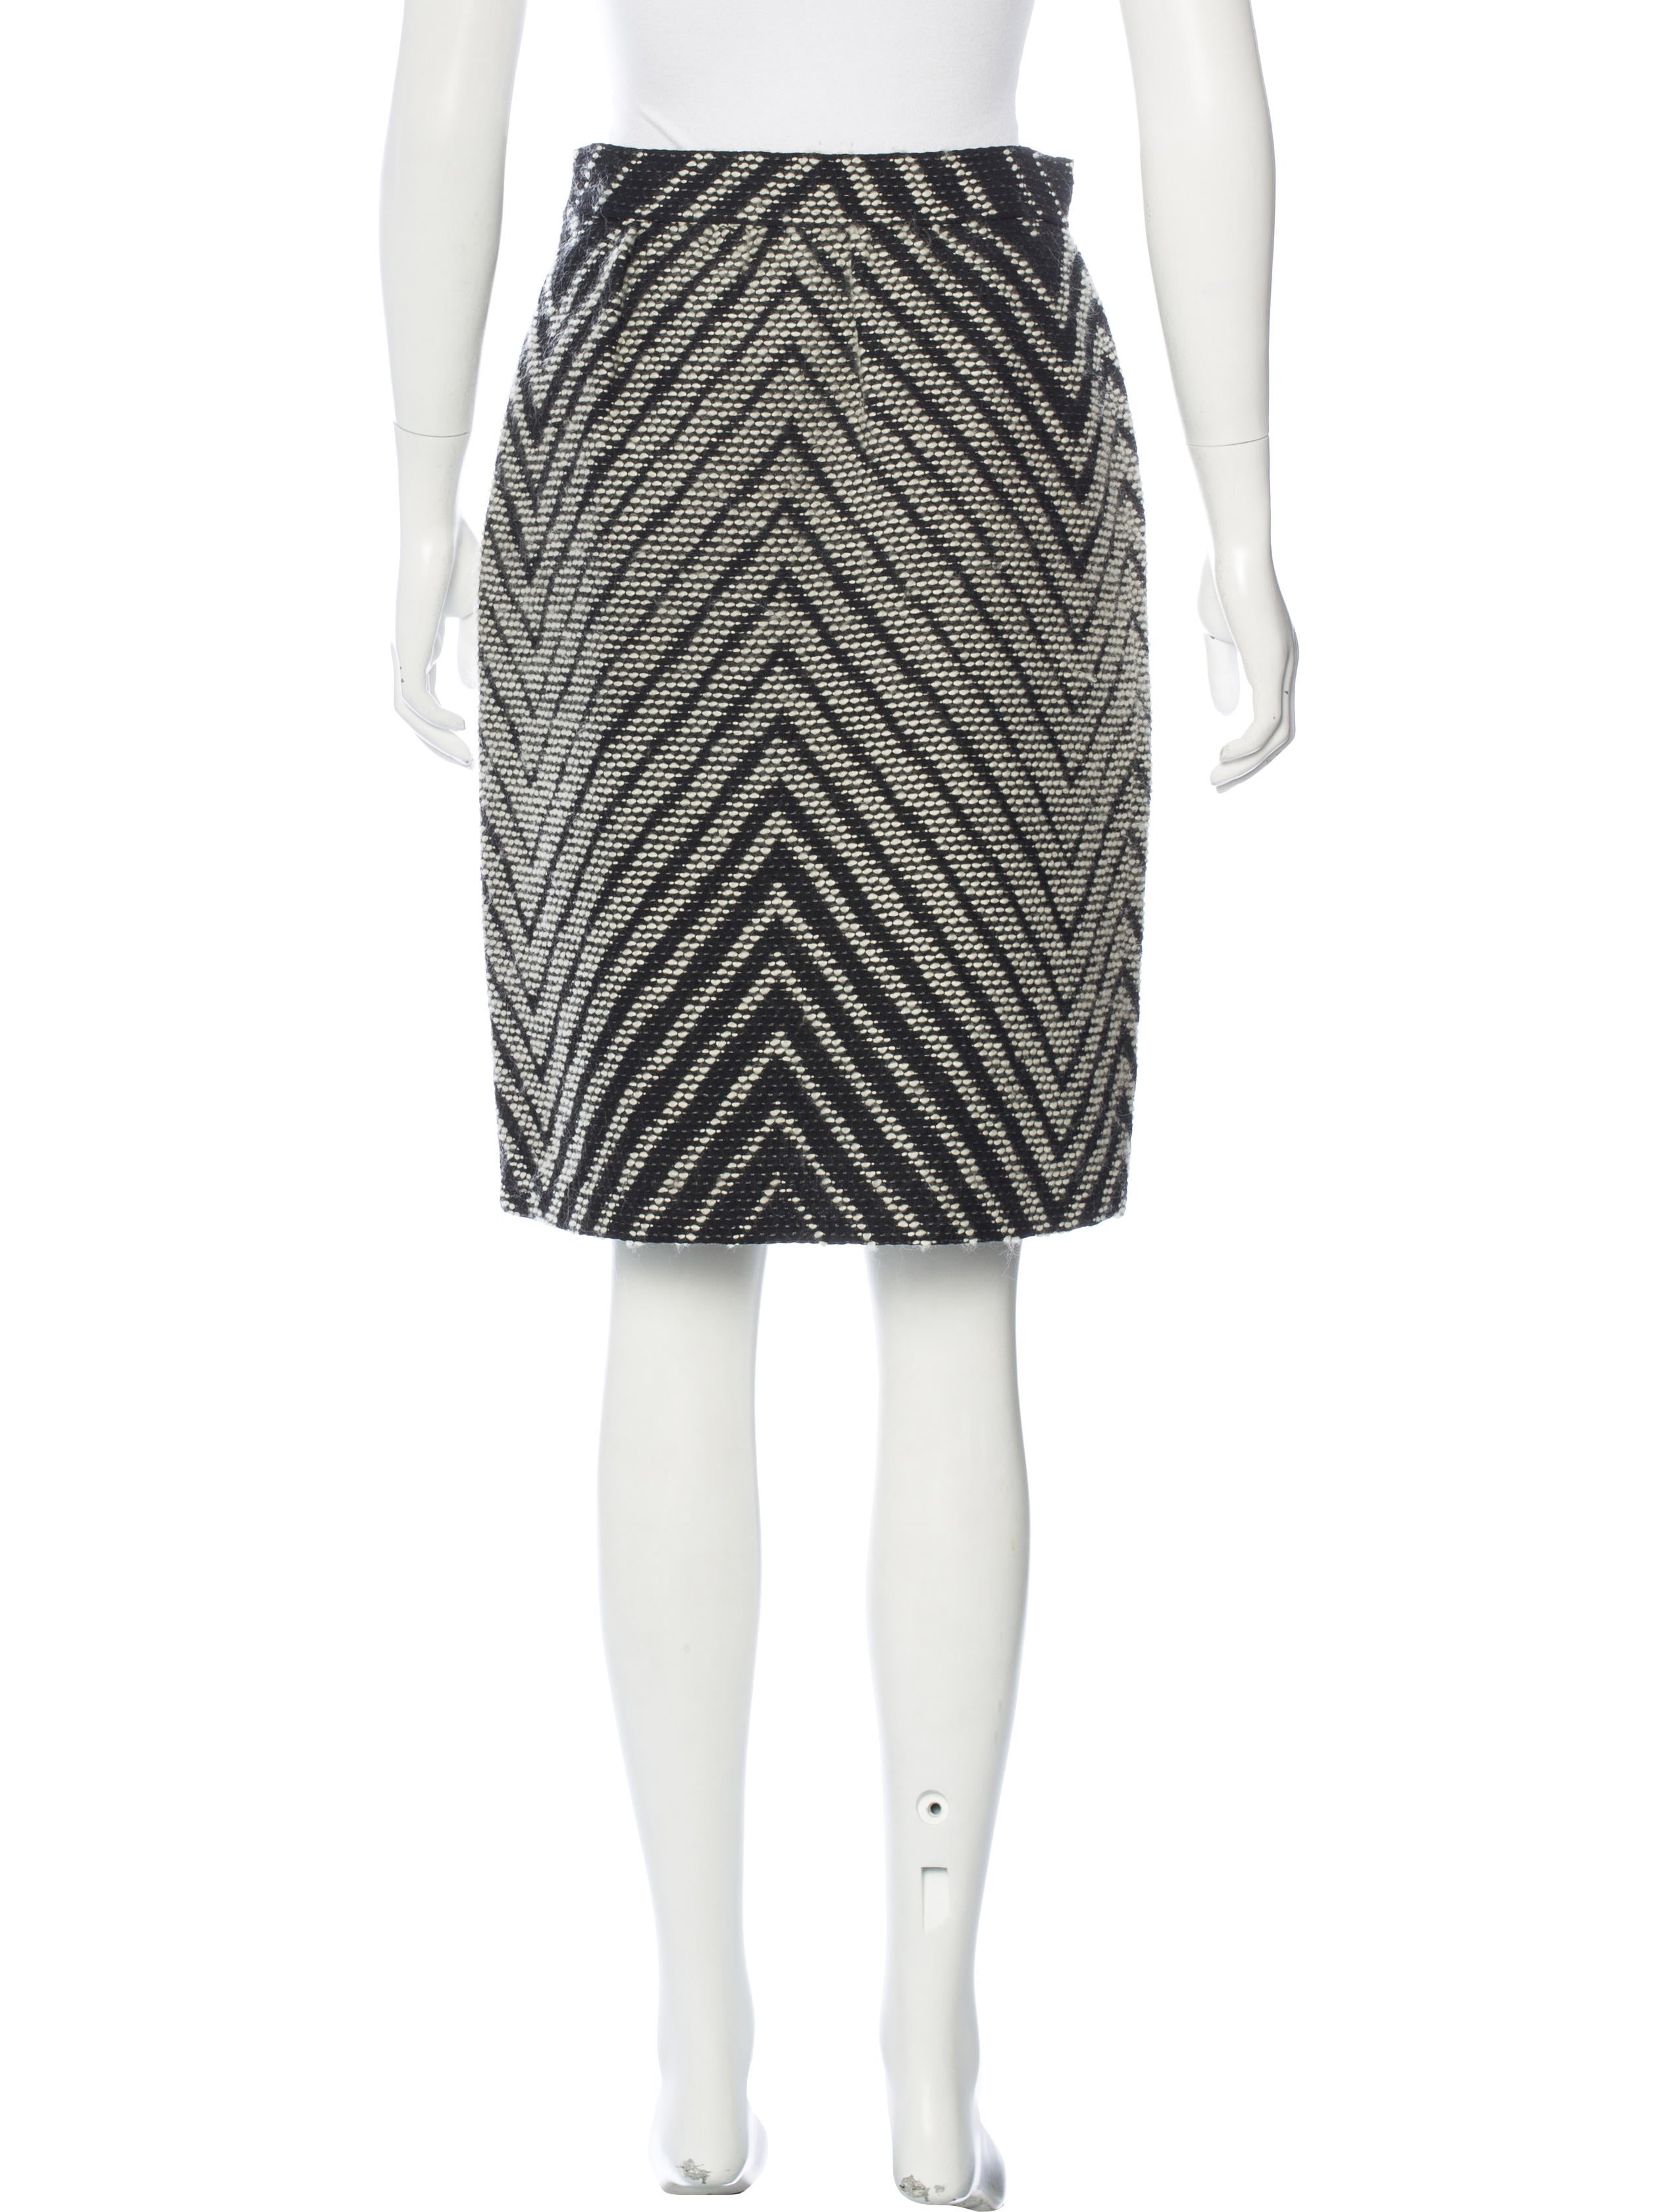 Valentino Knit Pencil Skirt - Skirts - VAL57831 The RealReal